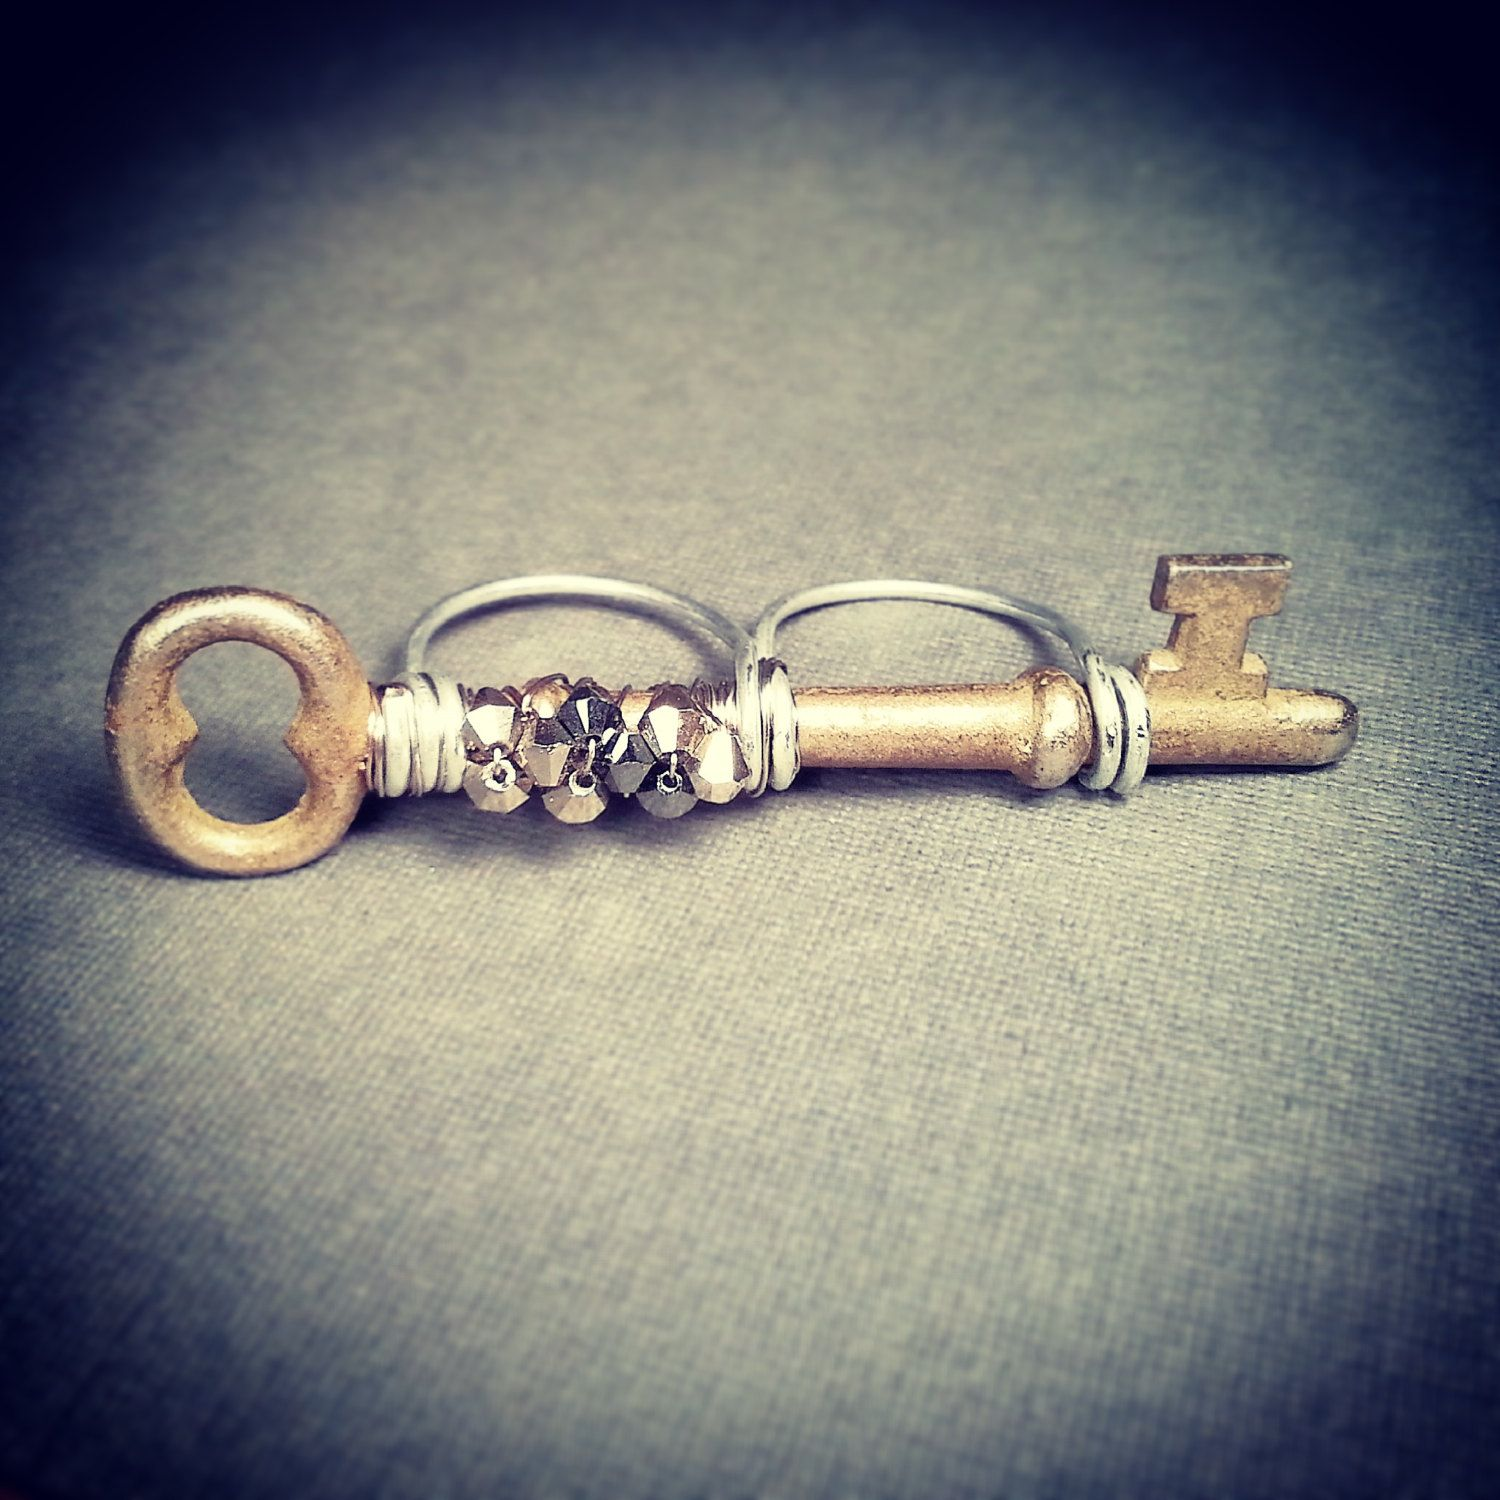 7e1c05b00 New to jennascifres on Etsy: Two Finger Skeleton Key Ring - Steampunk Style  - Swarovski Crystals - Statement Ring - Two Finger Ring - Double Ring - Dual  ...